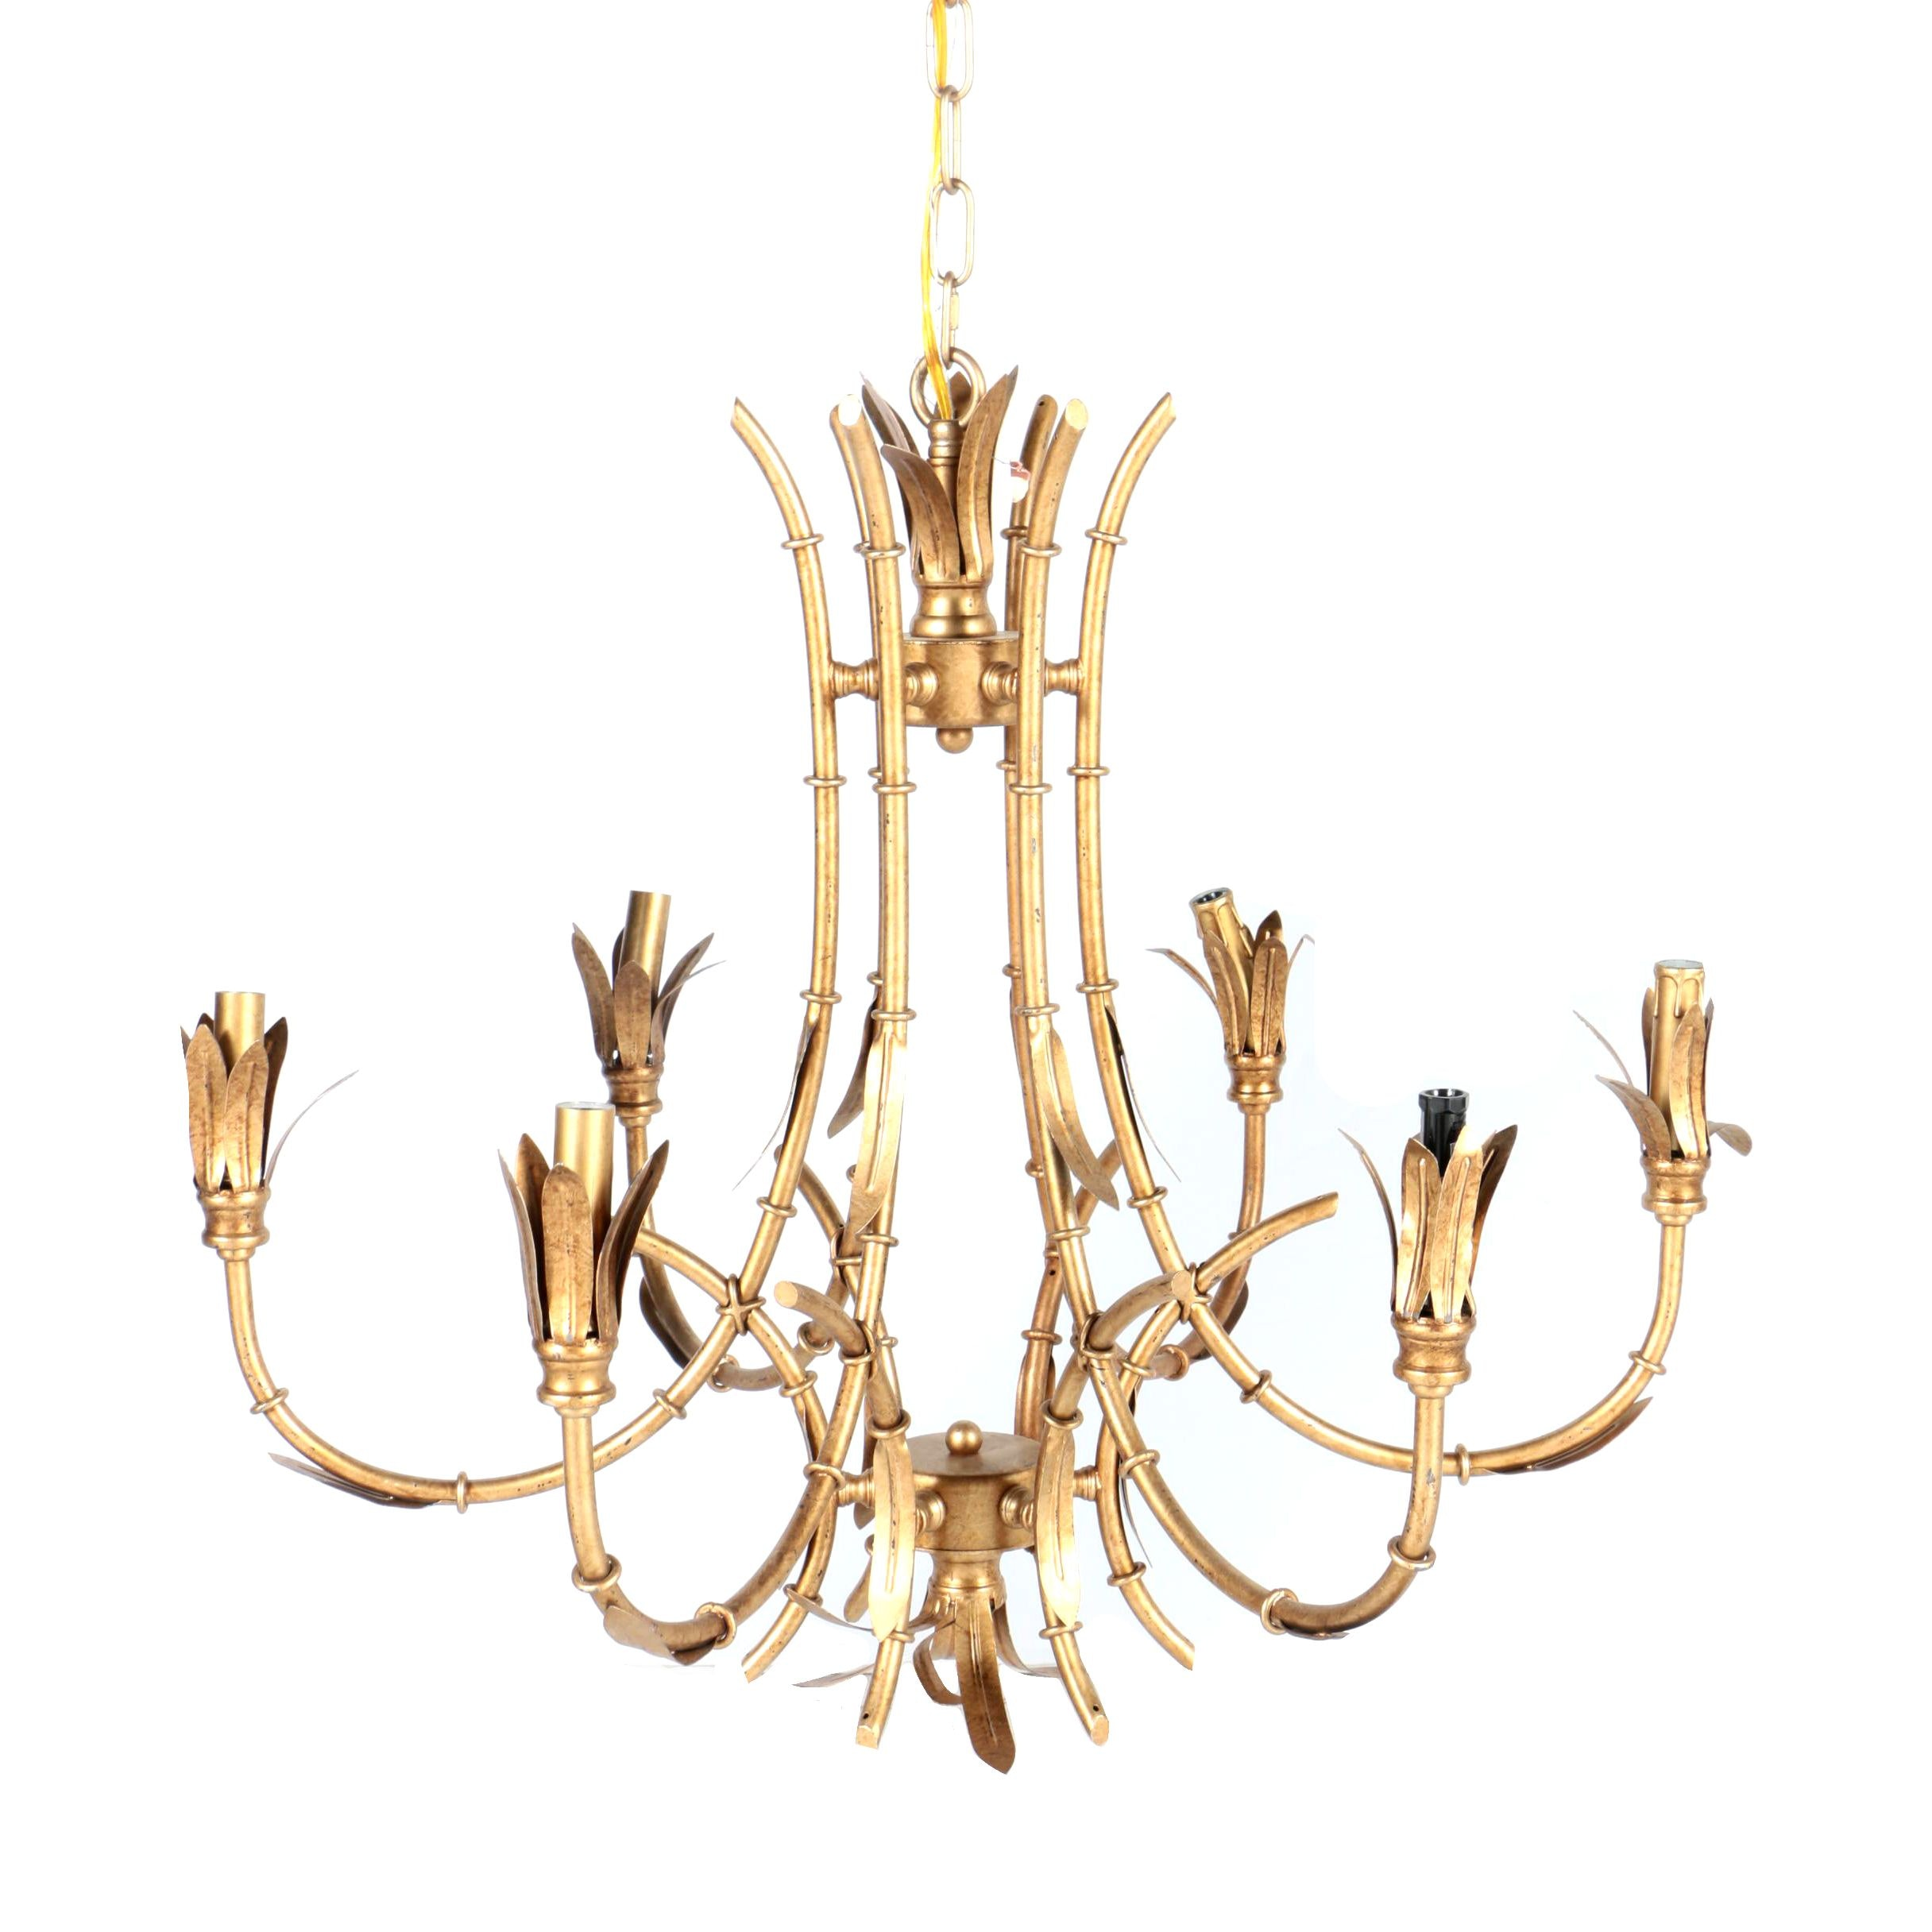 Bamboo Inspired Gold Tone Metal Chandelier